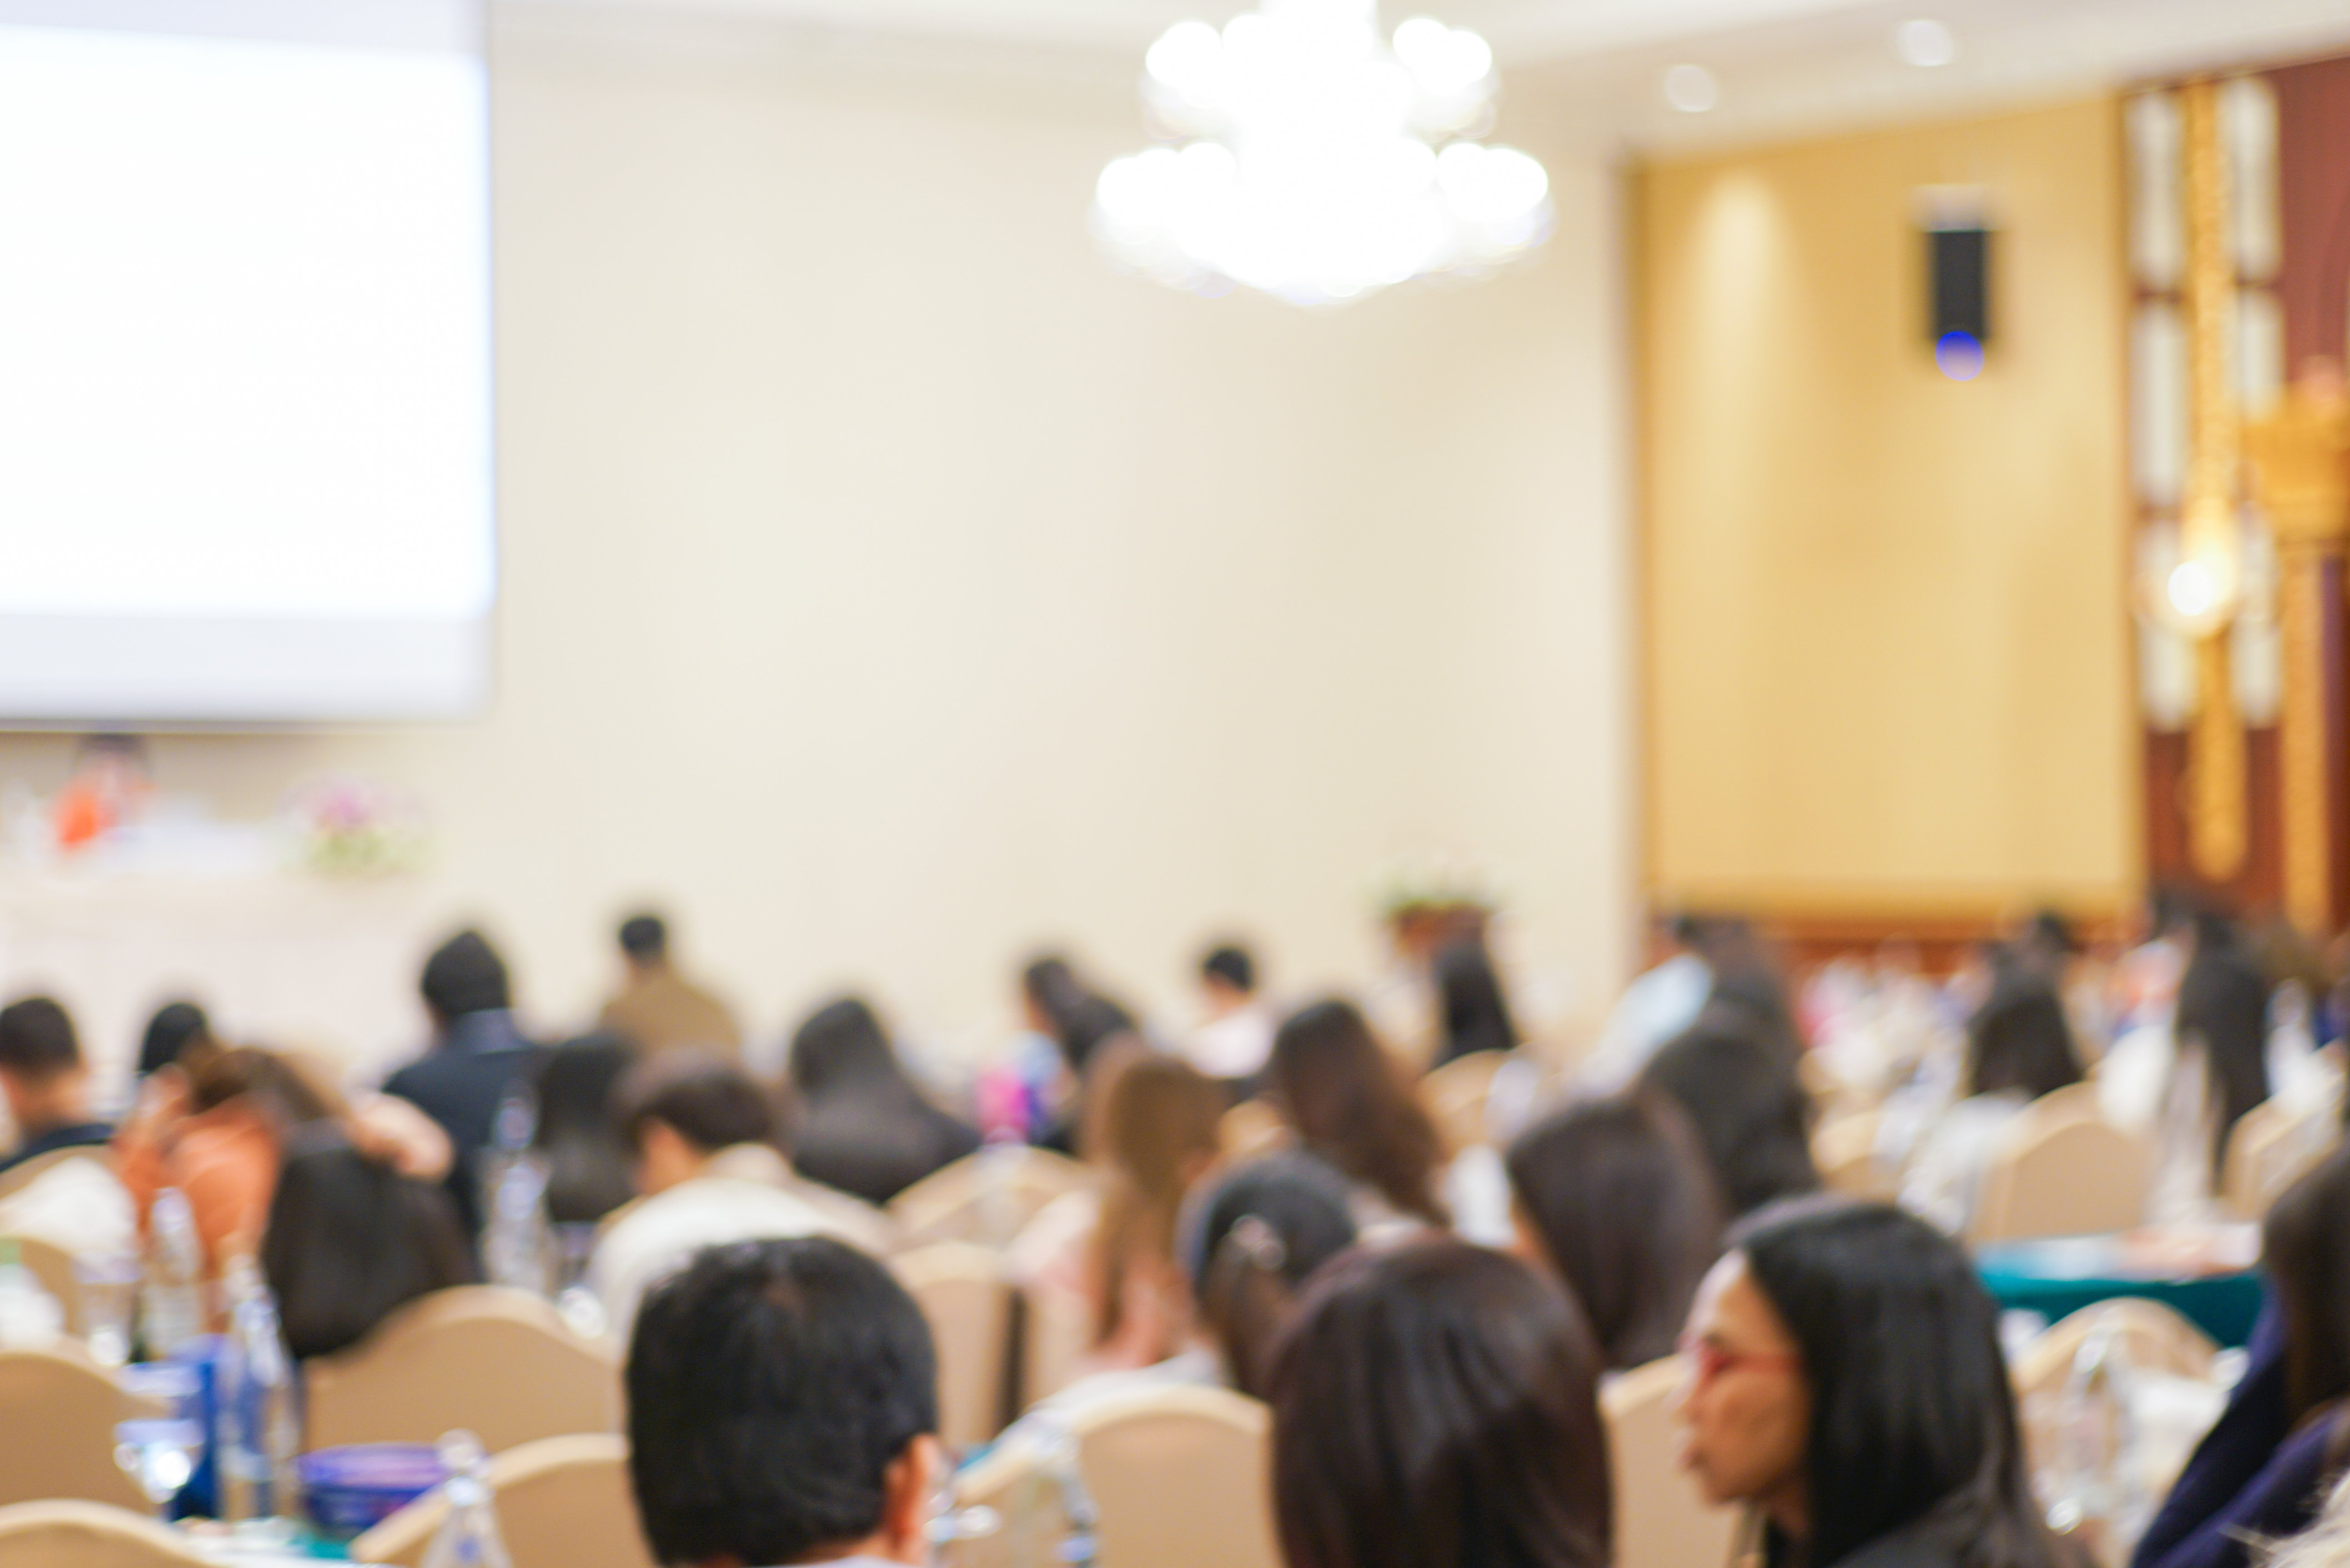 A lecture hall full of university students.│Source: Shutterstock